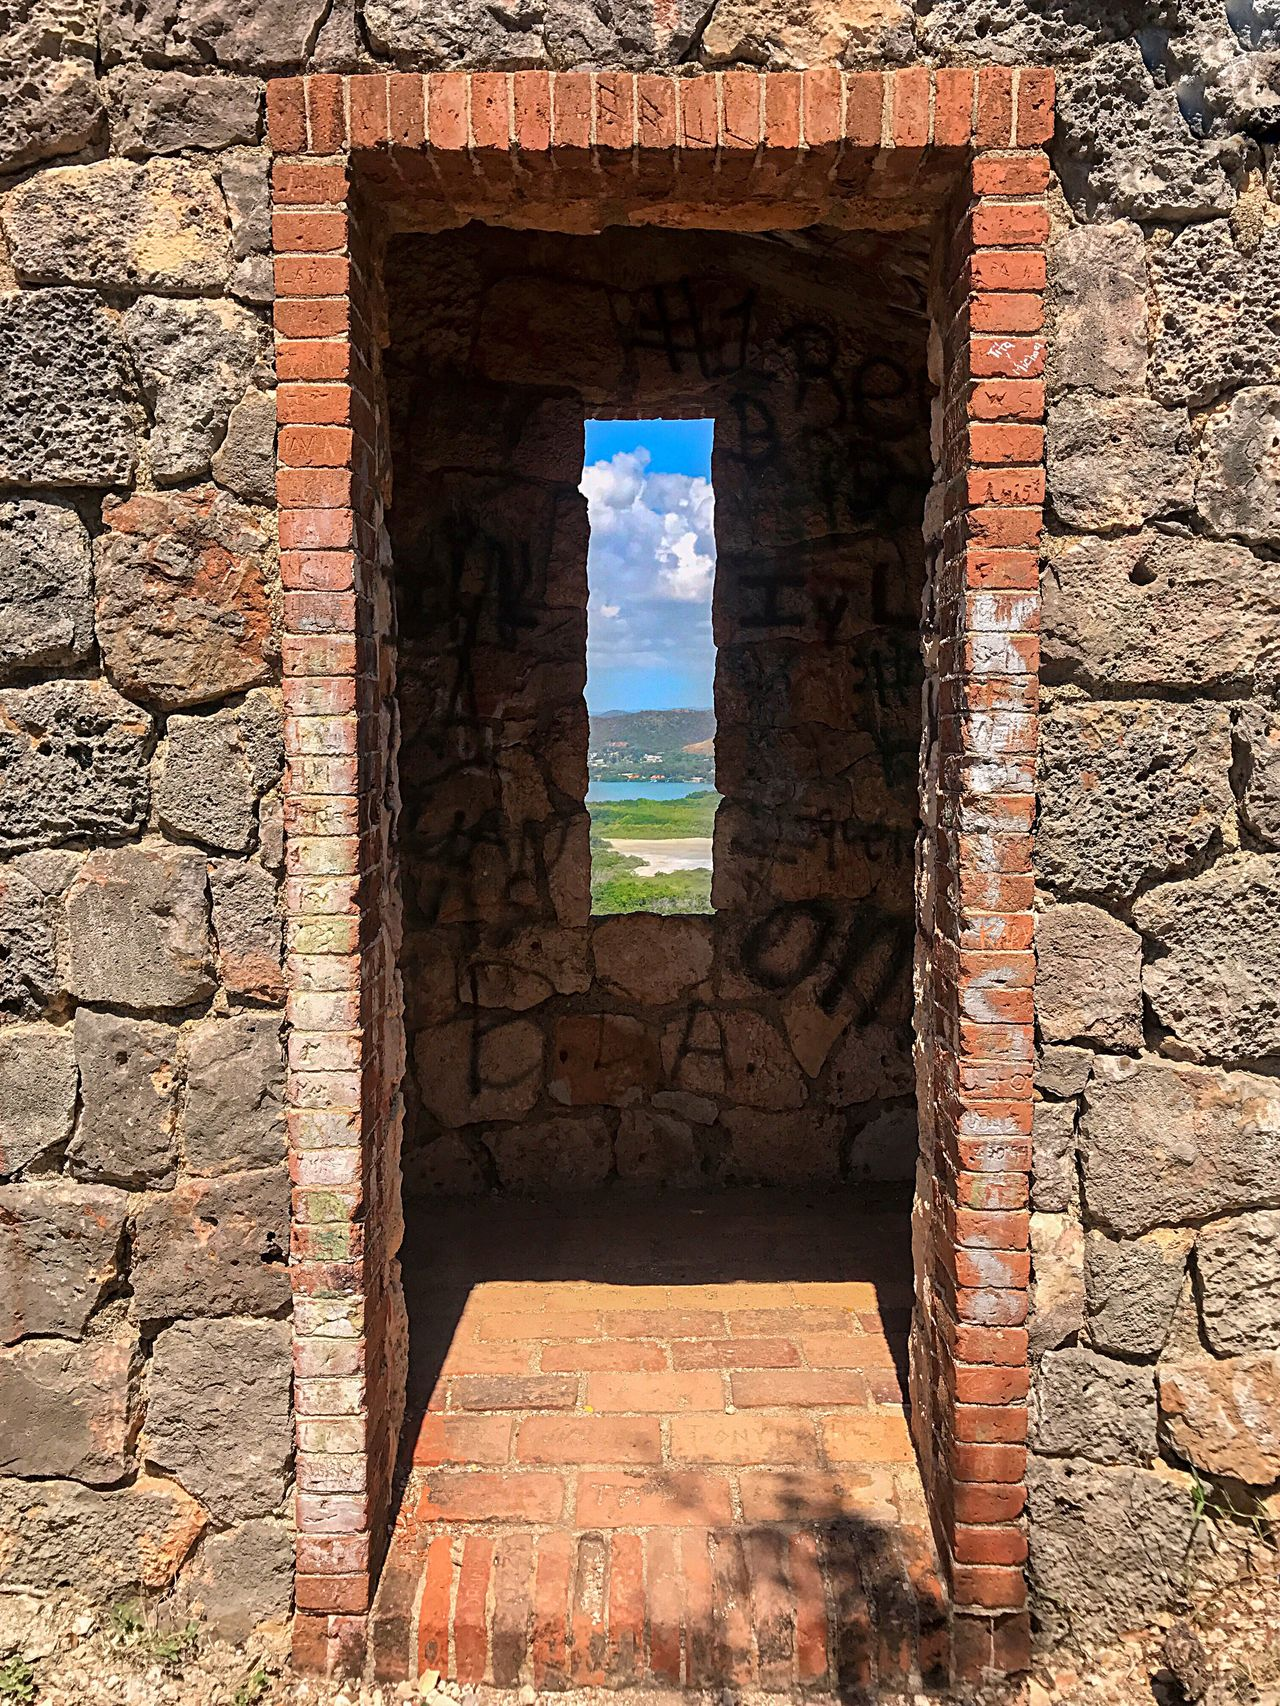 Rectangles Colors Structure Framed Vision View Masonry Historic Old Structure Colonos EyeEmNewHere EyeEmNewHere Fuerte Capron